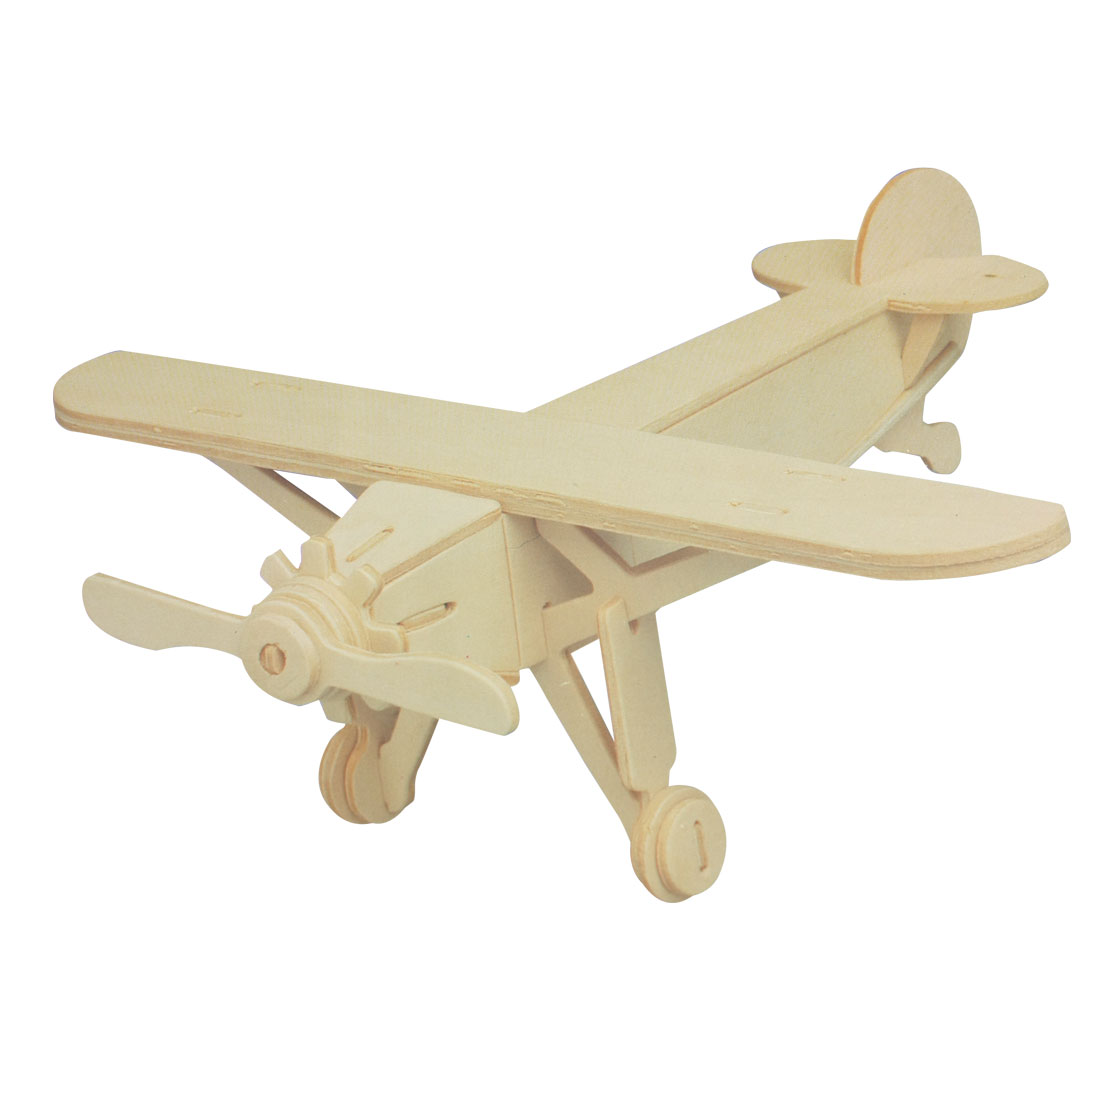 DIY Lover Wooden Assemble Louis Plane Model Construction Kit Toy Gift